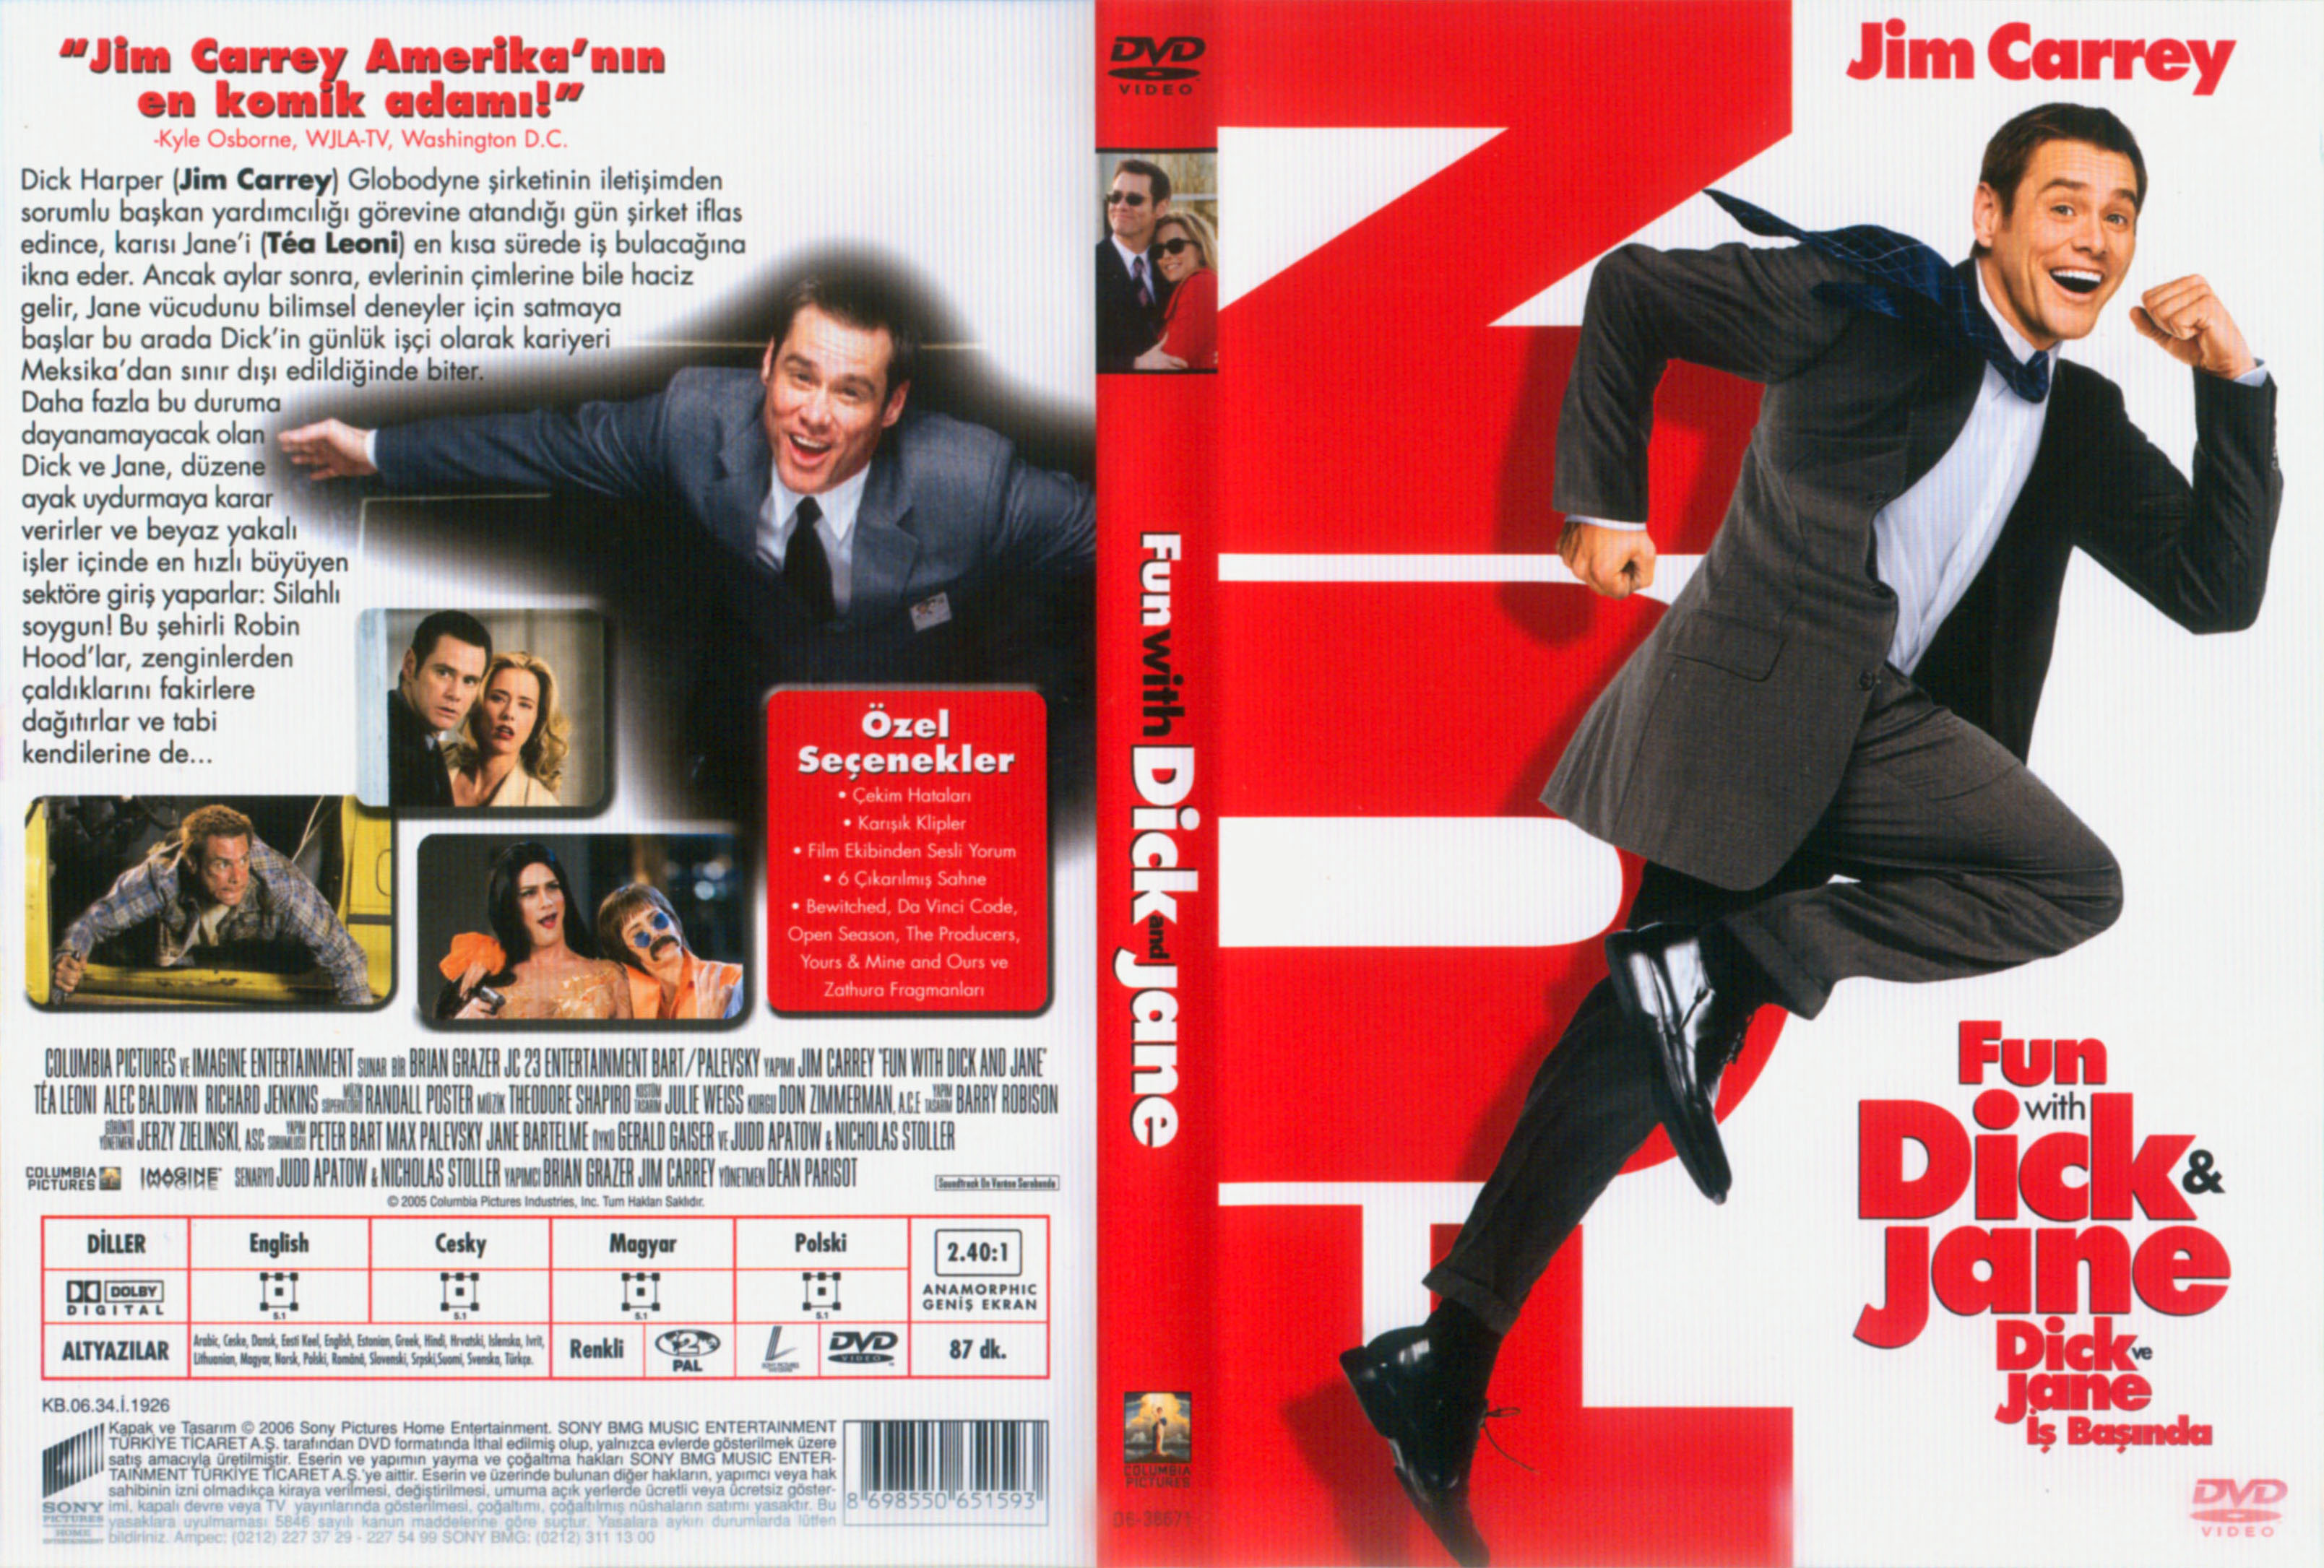 Can dick and jane dvd cover congratulate, remarkable